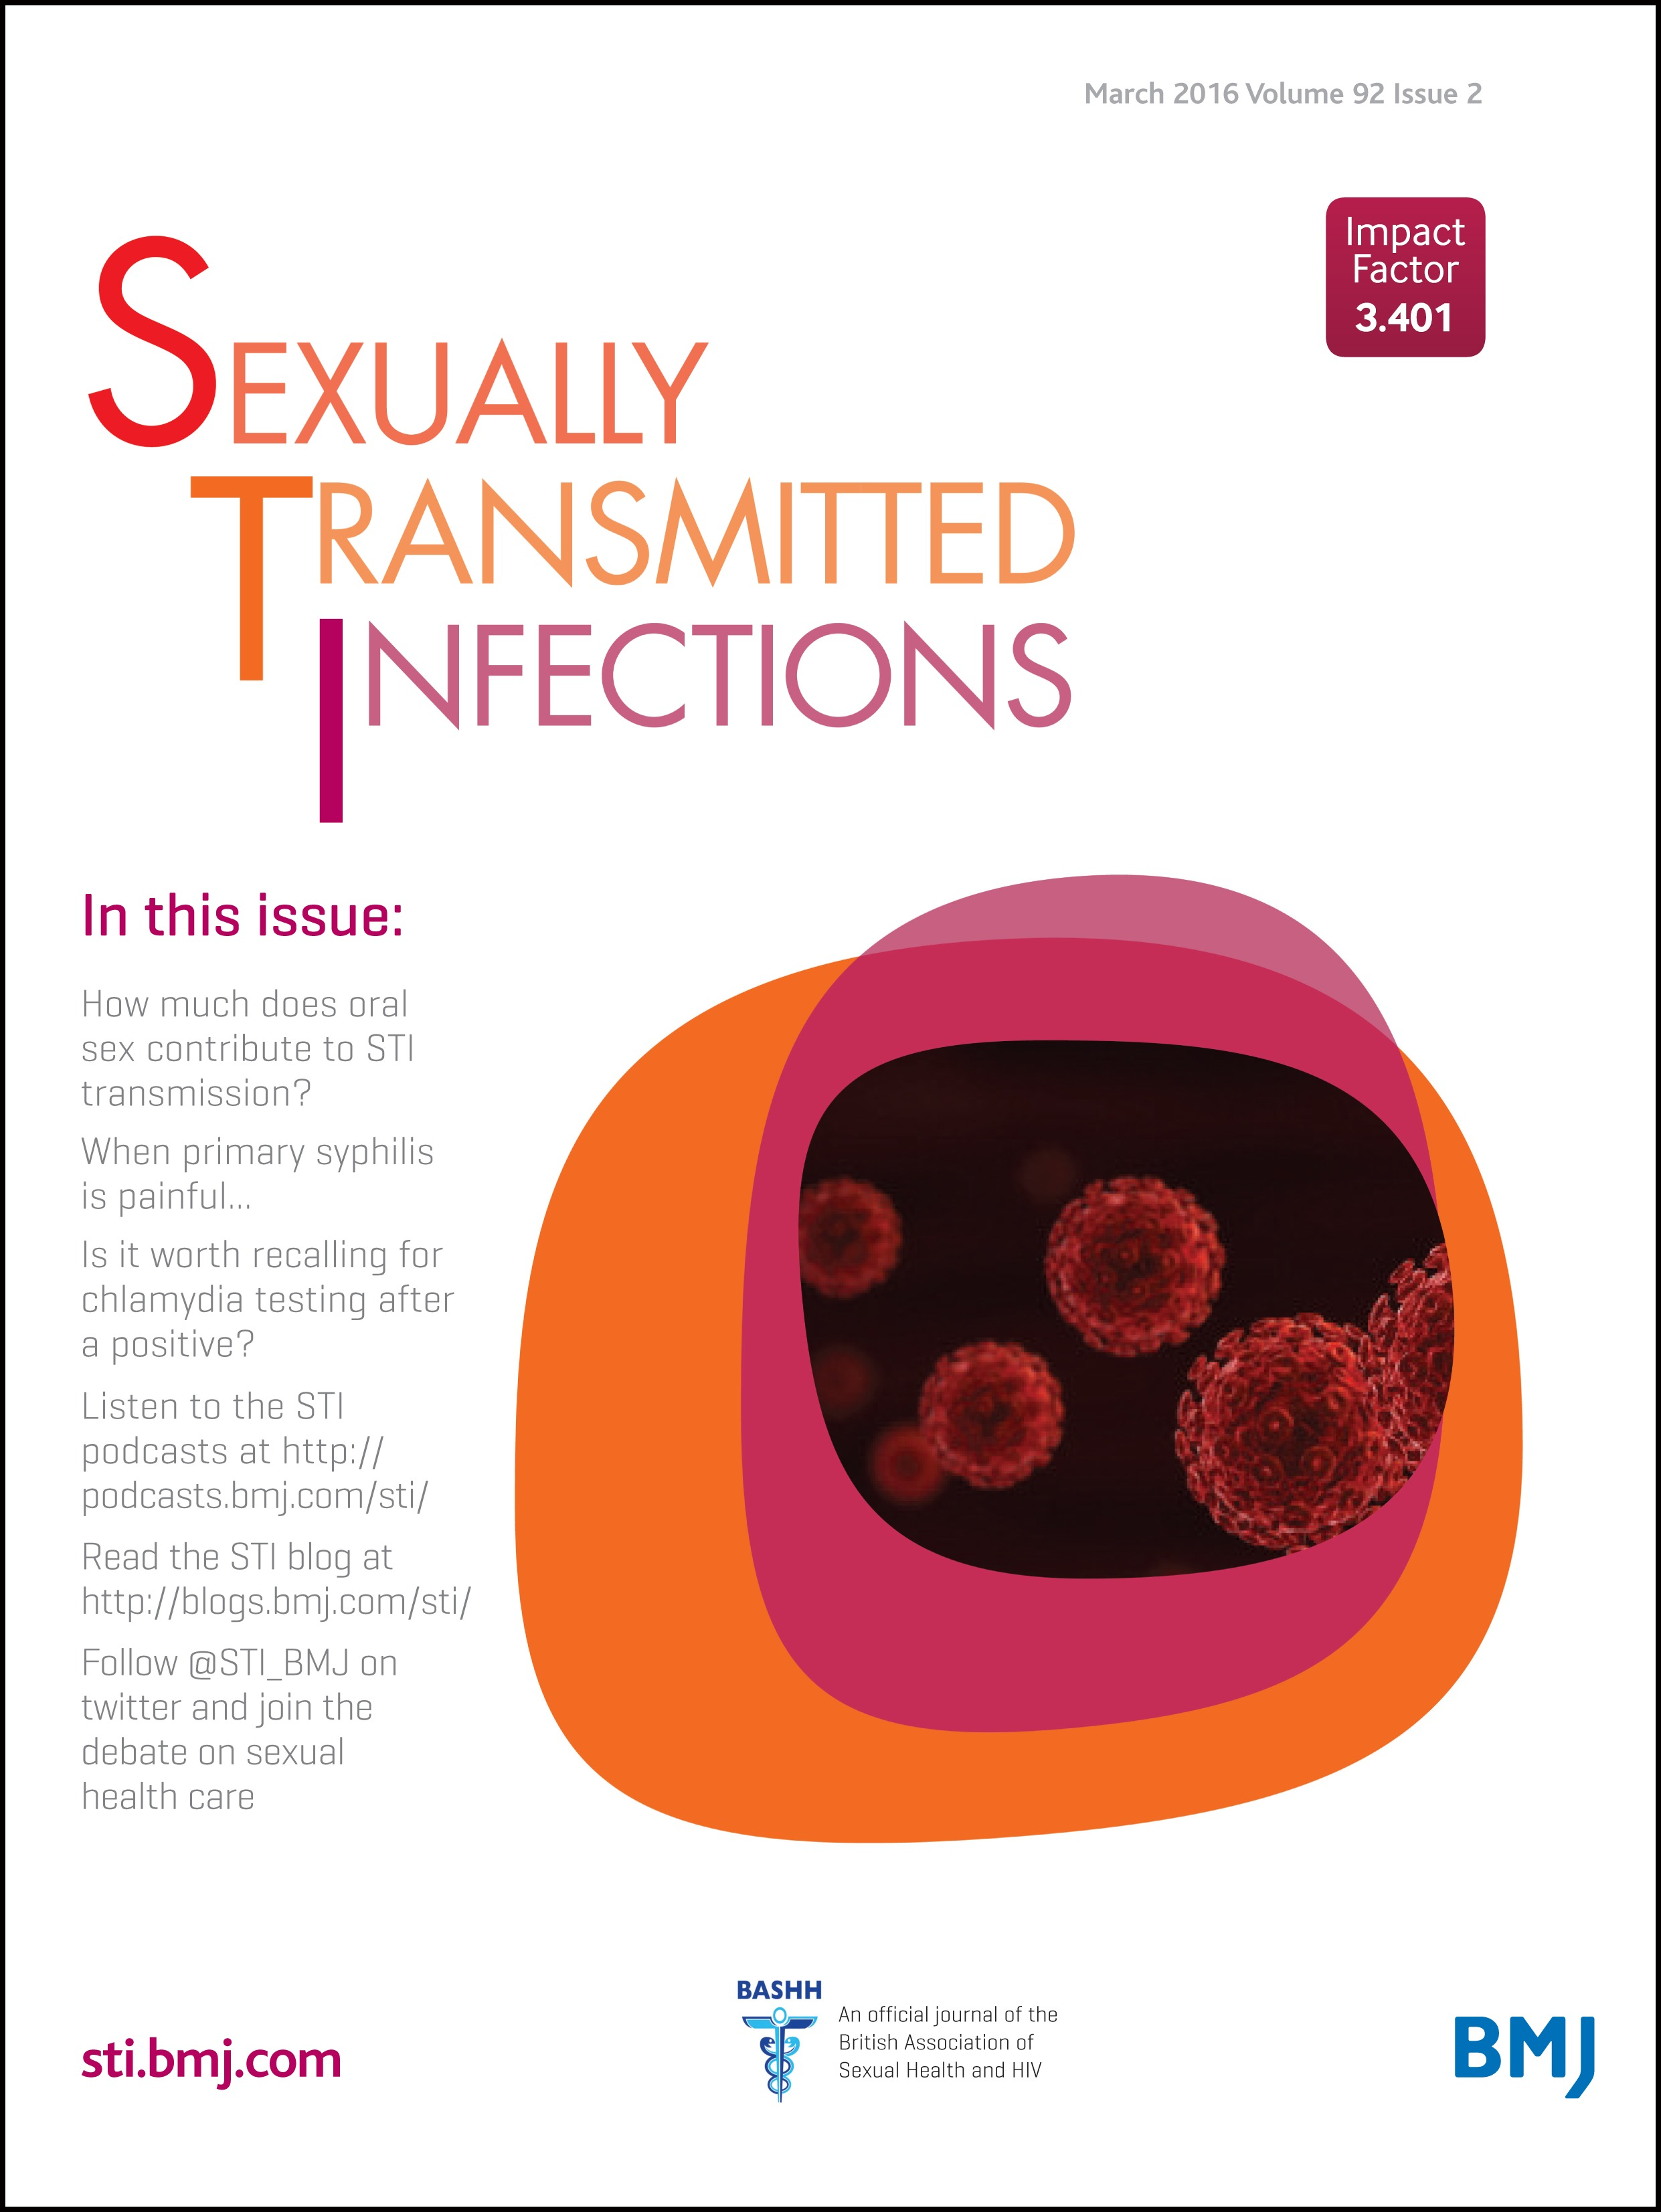 Meeting sexual partners online: associated sexual behaviour and prevalent  chlamydia infection among adolescents in Norway: a cross-sectional study ...